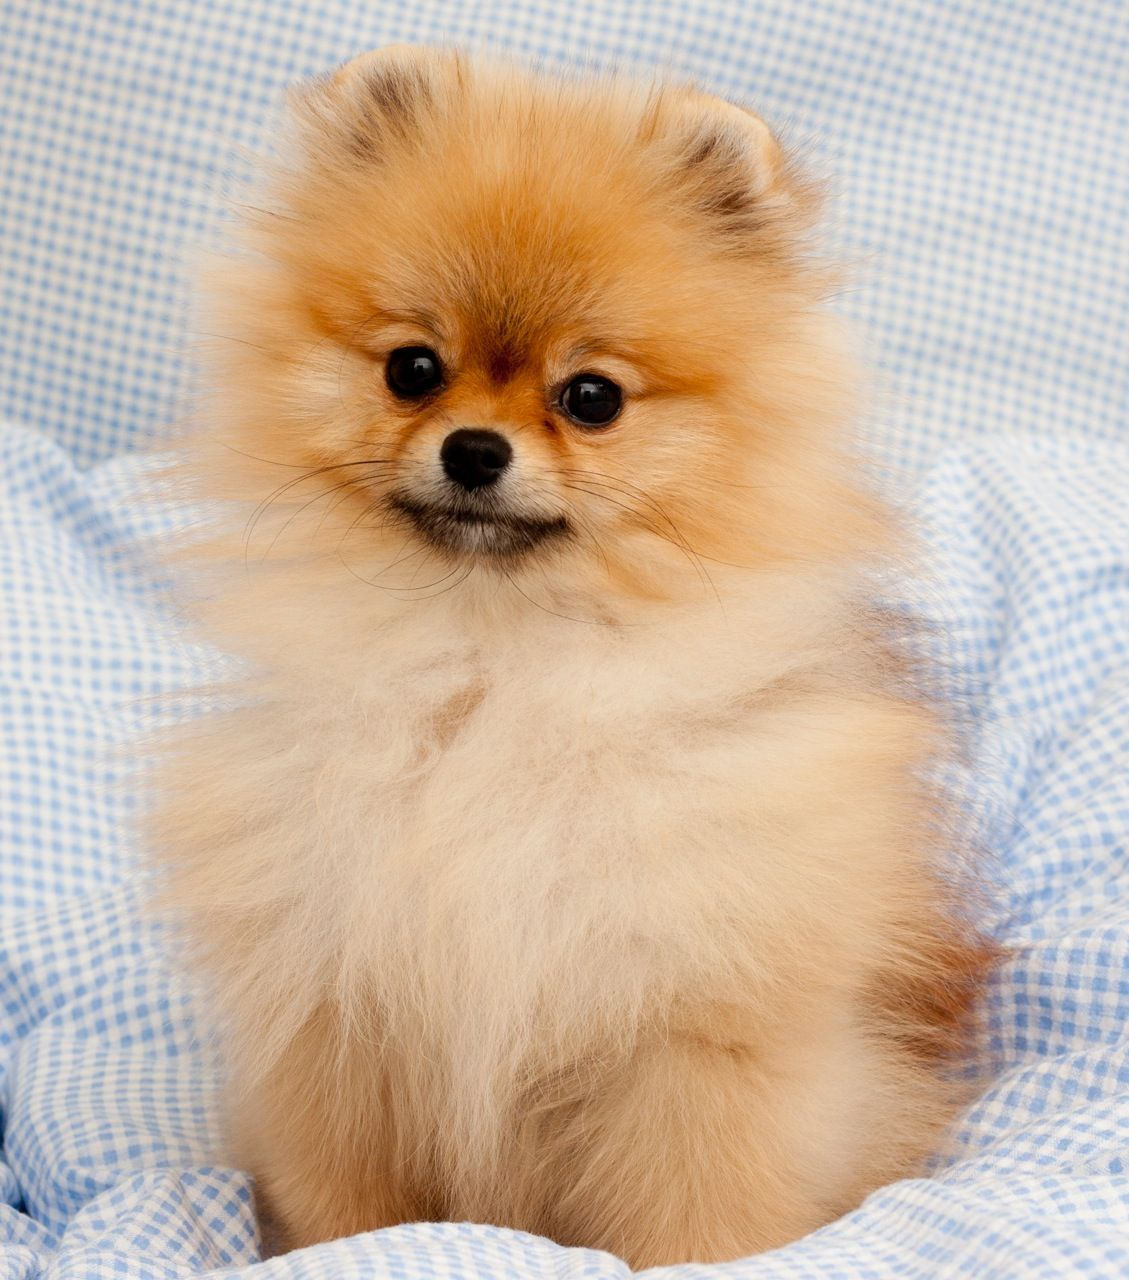 Adorable Puppy Pictures That Will Make Your Day Better 706722799